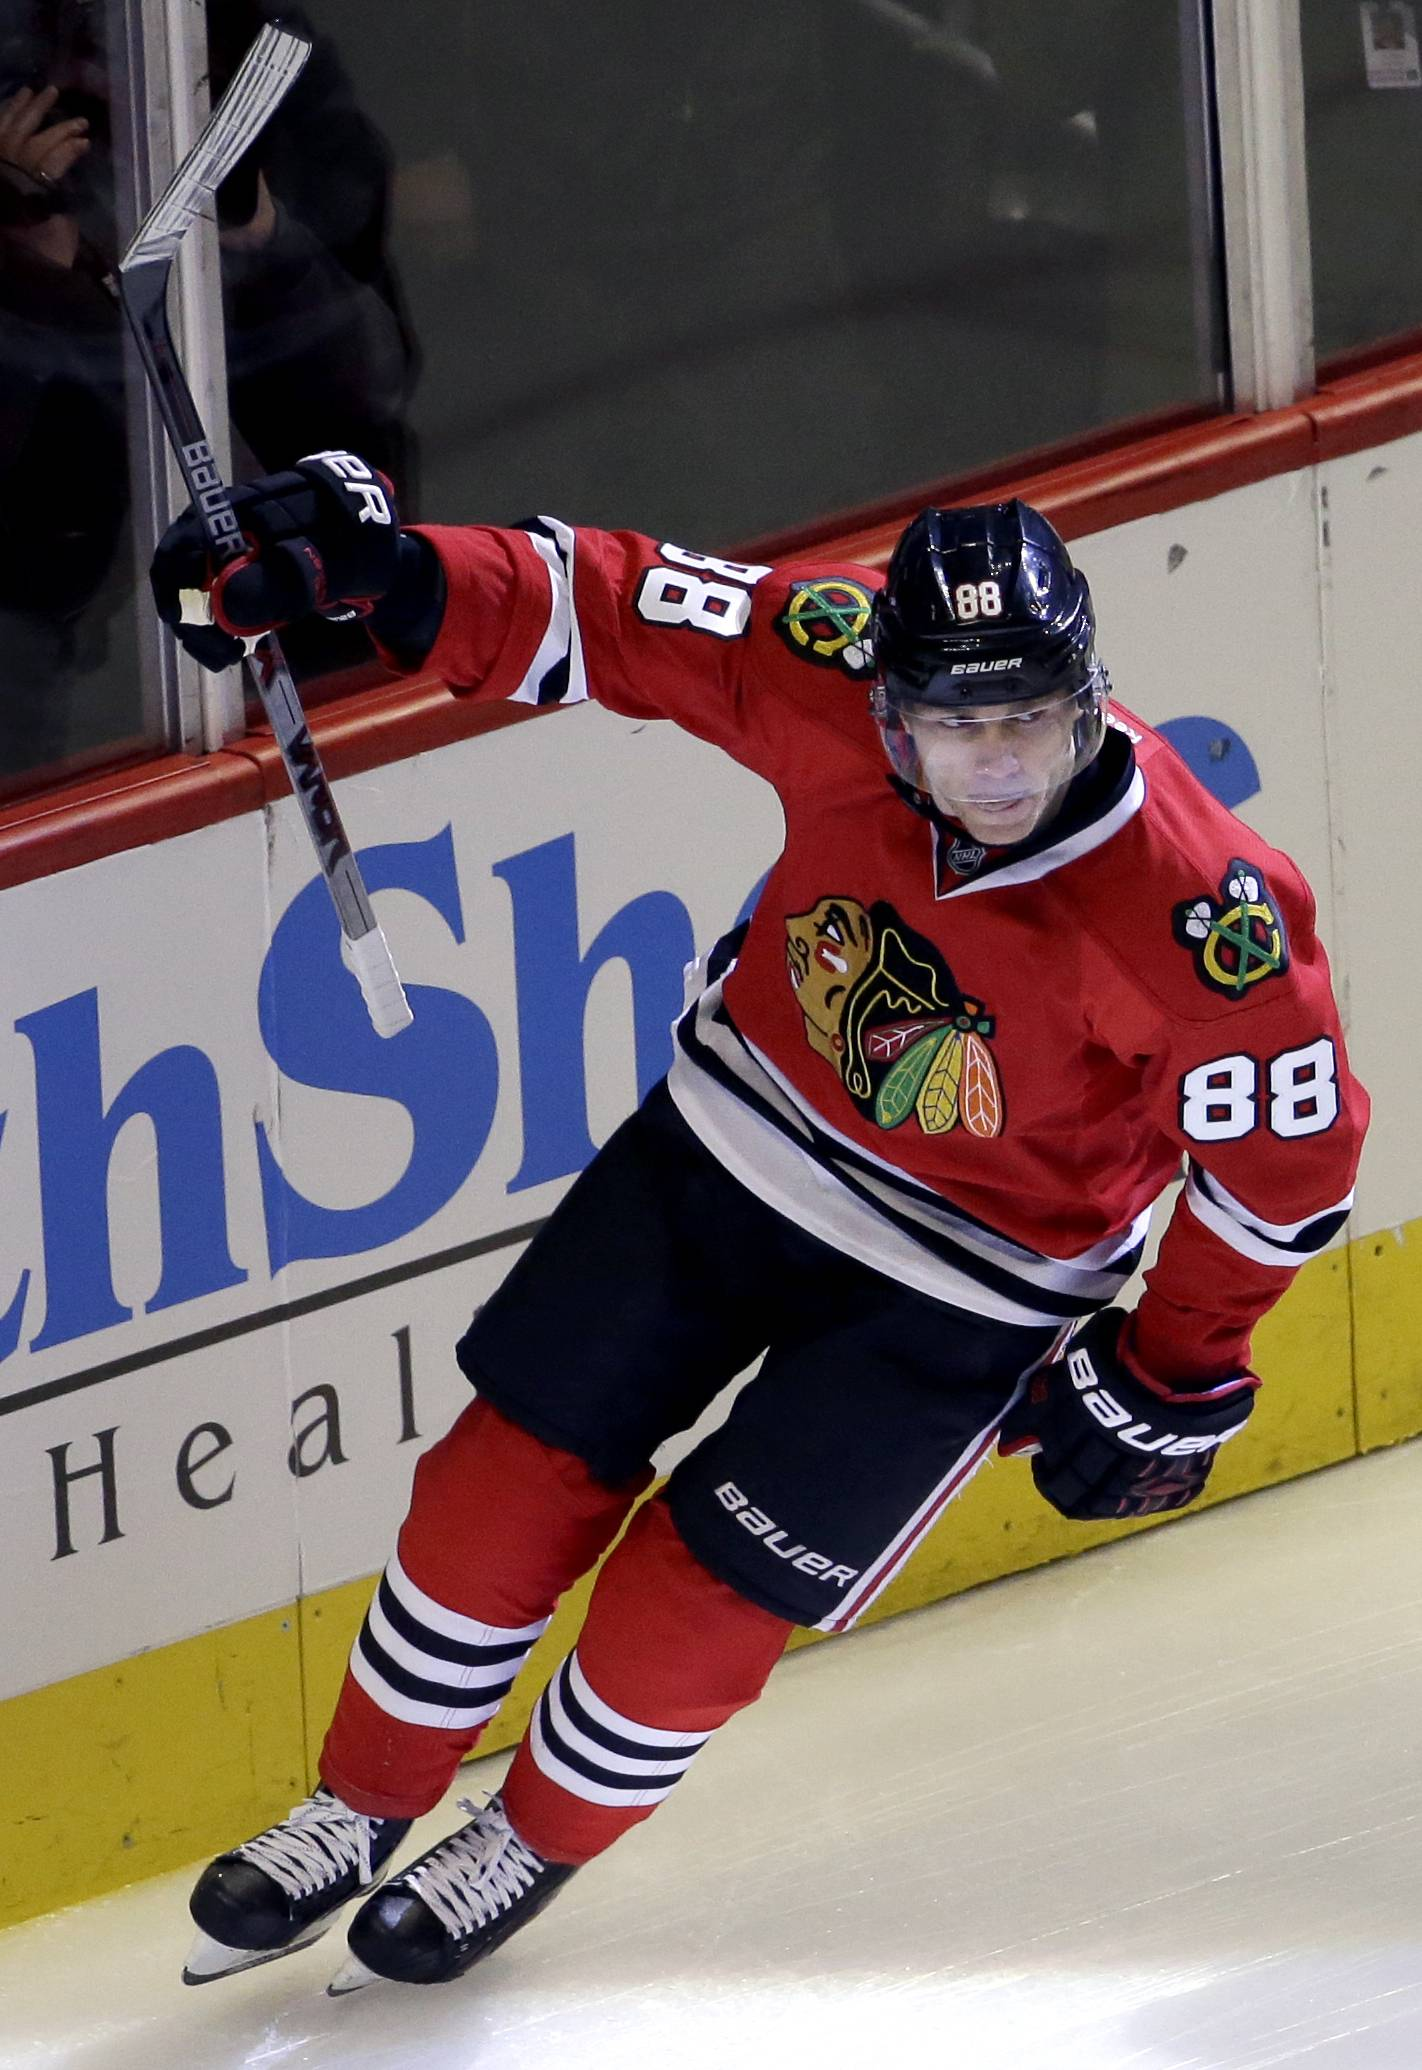 Chicago Blackhawks right wing Patrick Kane celebrates after scoring his goal during the first period of an NHL hockey game against the Detroit Red Wings Sunday, March 6, 2016, in Chicago.